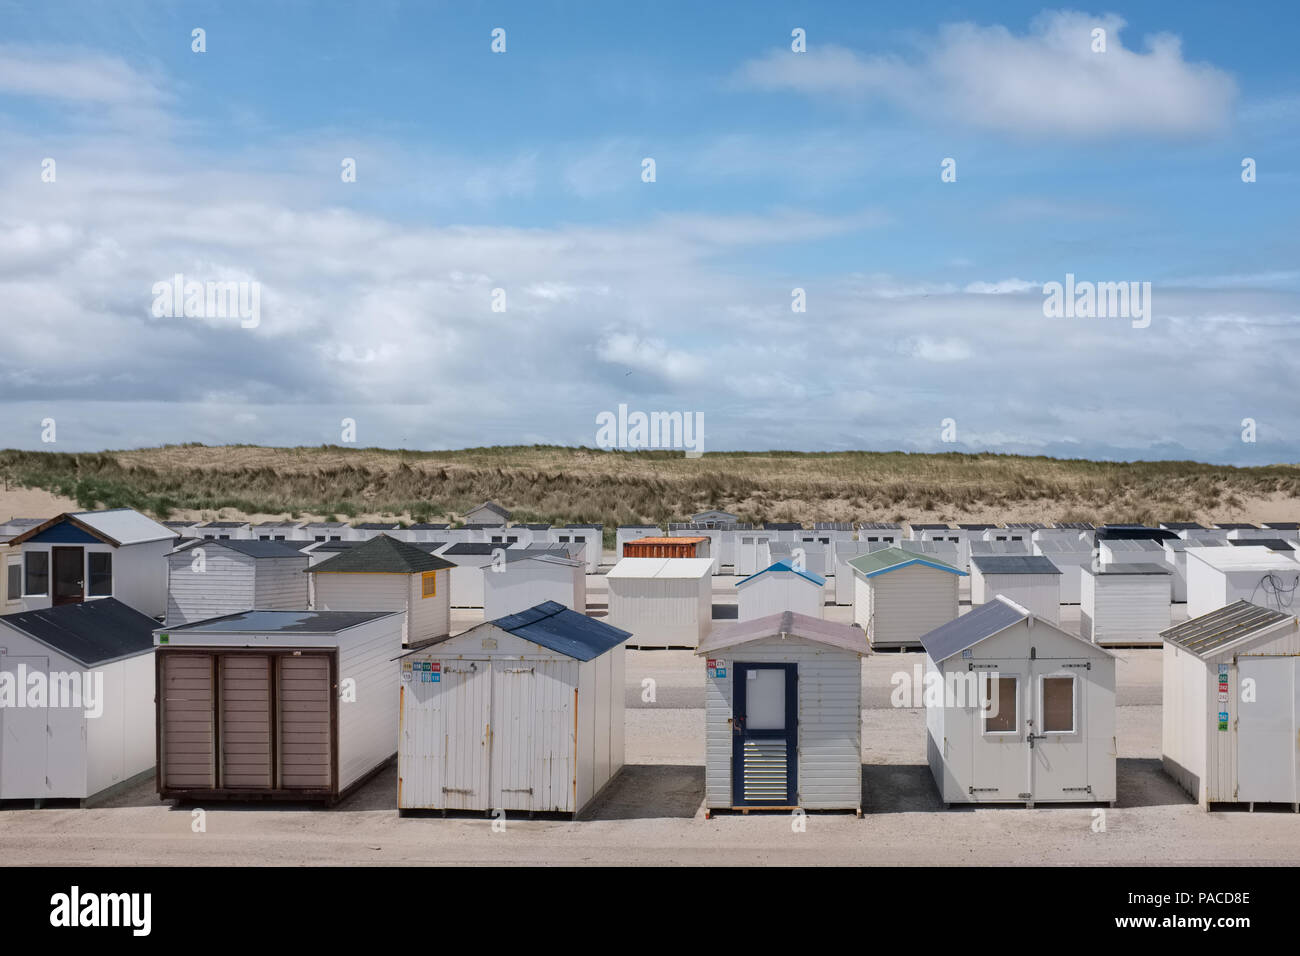 Beach houses lined up waiting for summer Stock Photo